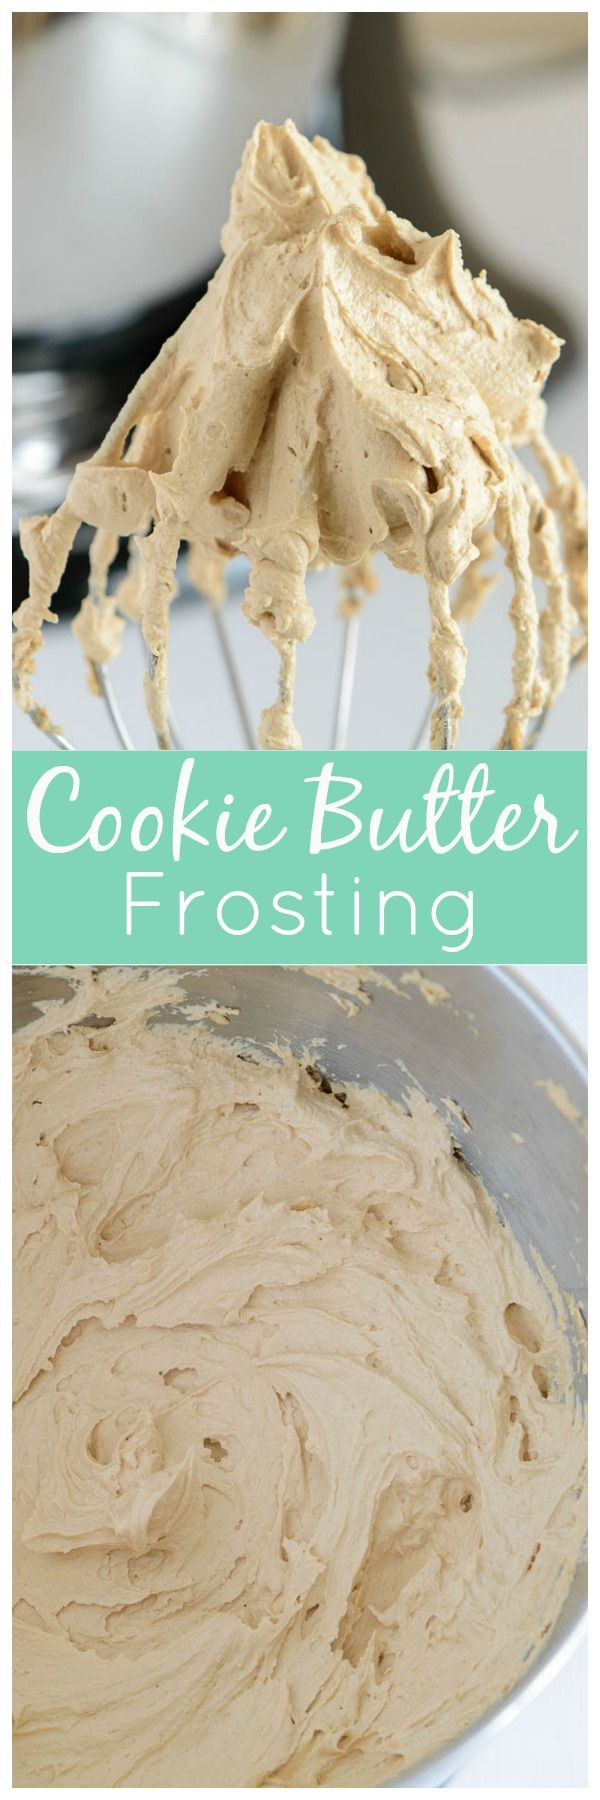 Incredibly sweet and delicious buttercream frosting flavored with Biscoff cookie butter. You'll want to put this frosting on EVERYTHING!